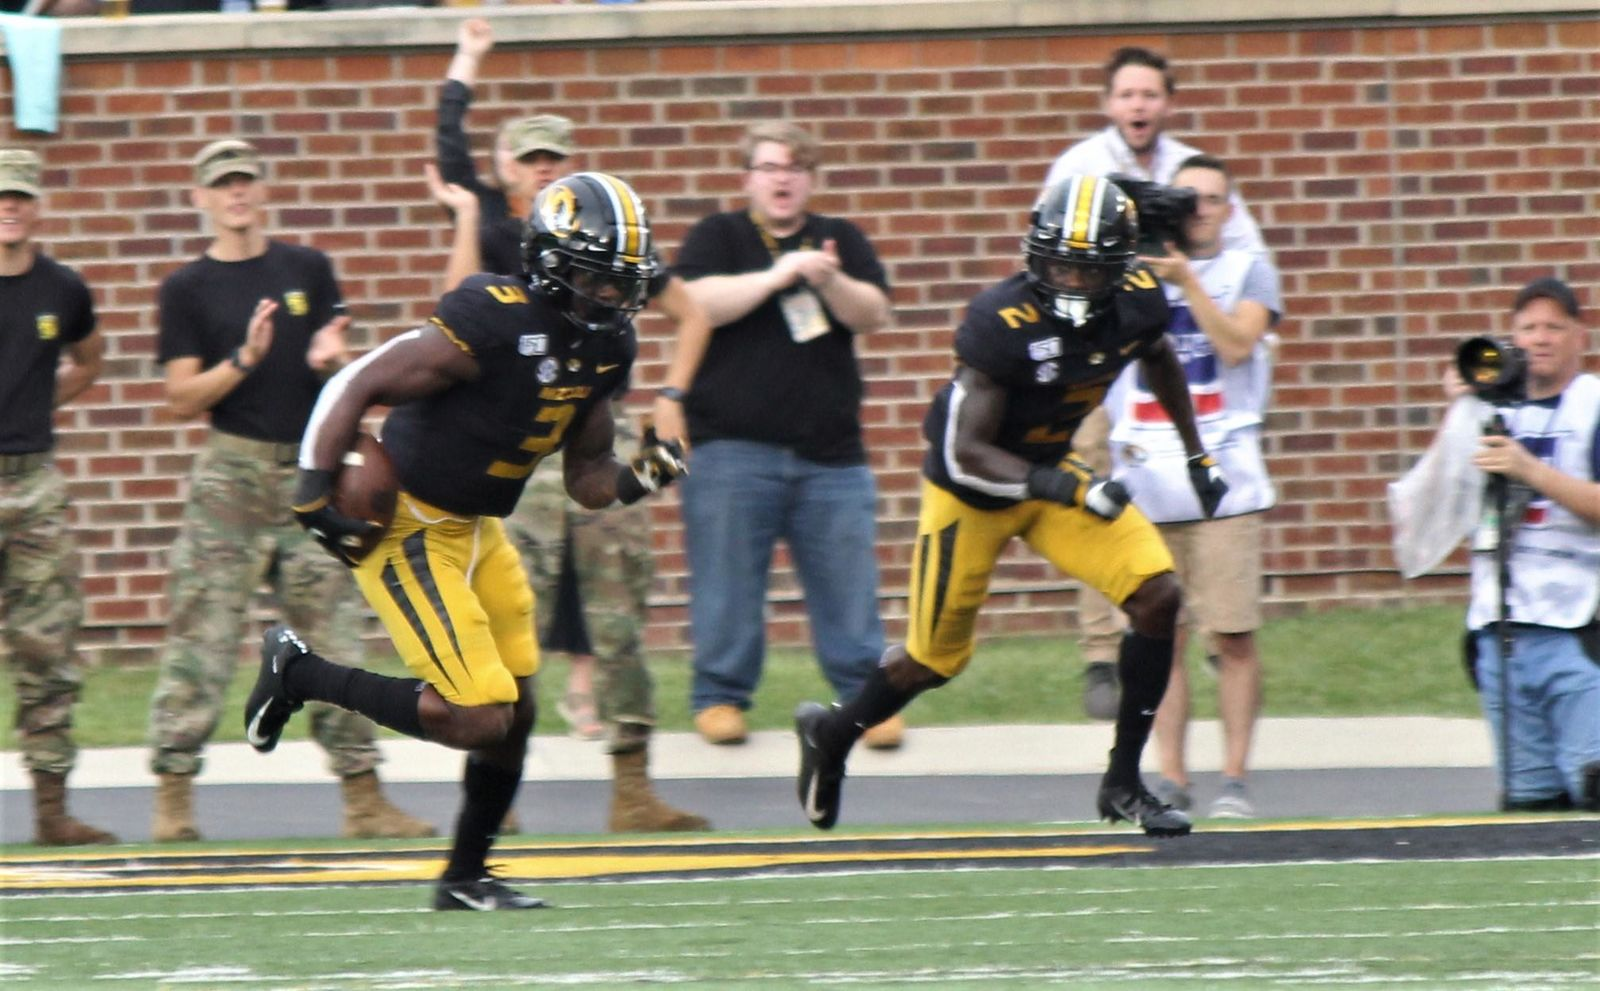 Senior defensive back Ronnell Perkins takes an interception 100 yards for a touchdown Saturday afternoon at Memorial Stadium in the Tigers' 34-14 win over South Carolina. (Noah Brown/KRCG 13)